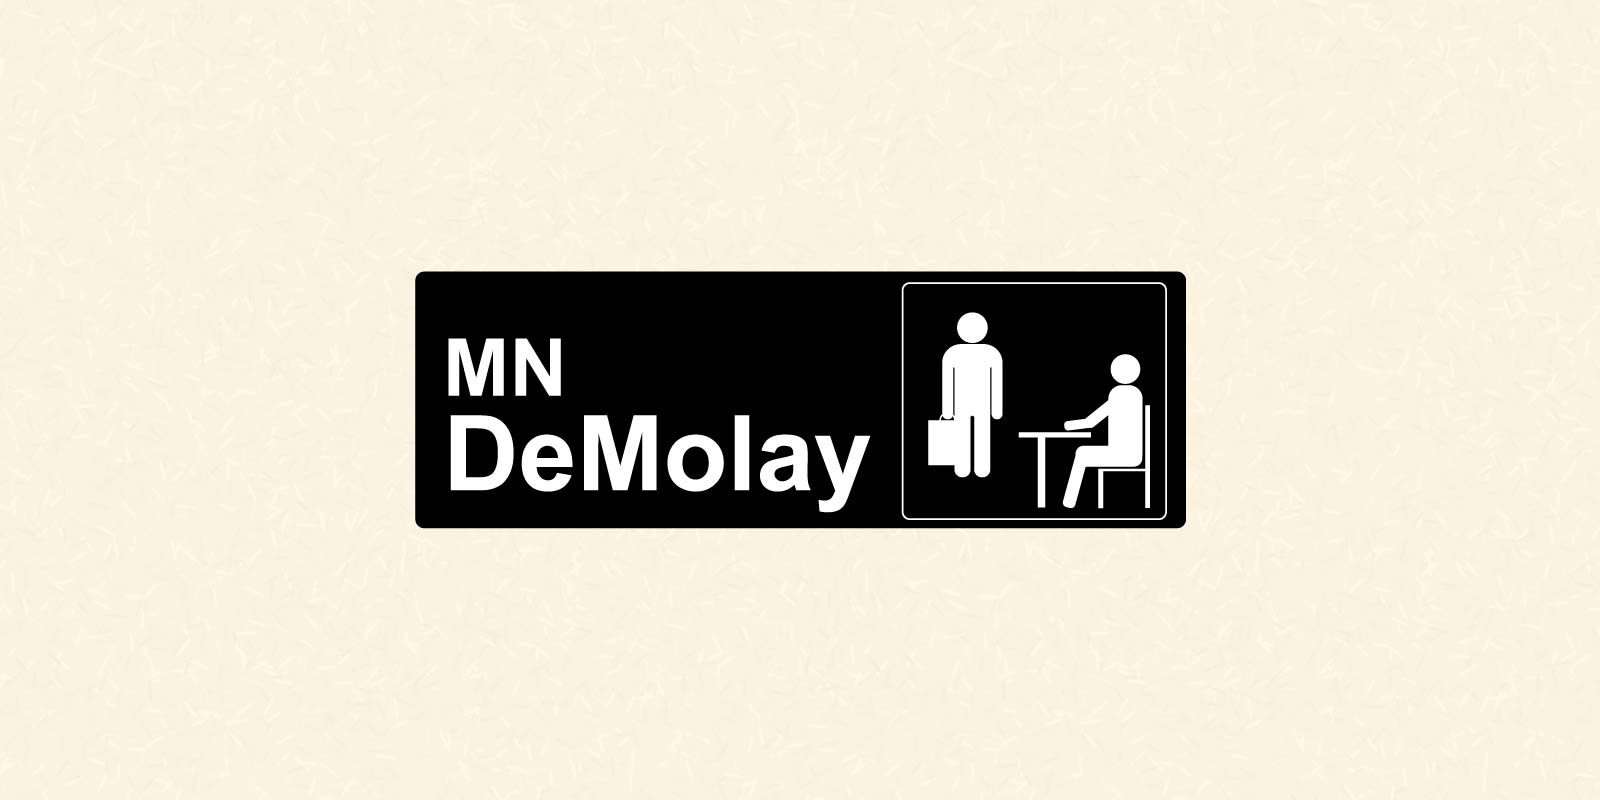 MN DeMolay Conclave 2021: The Office